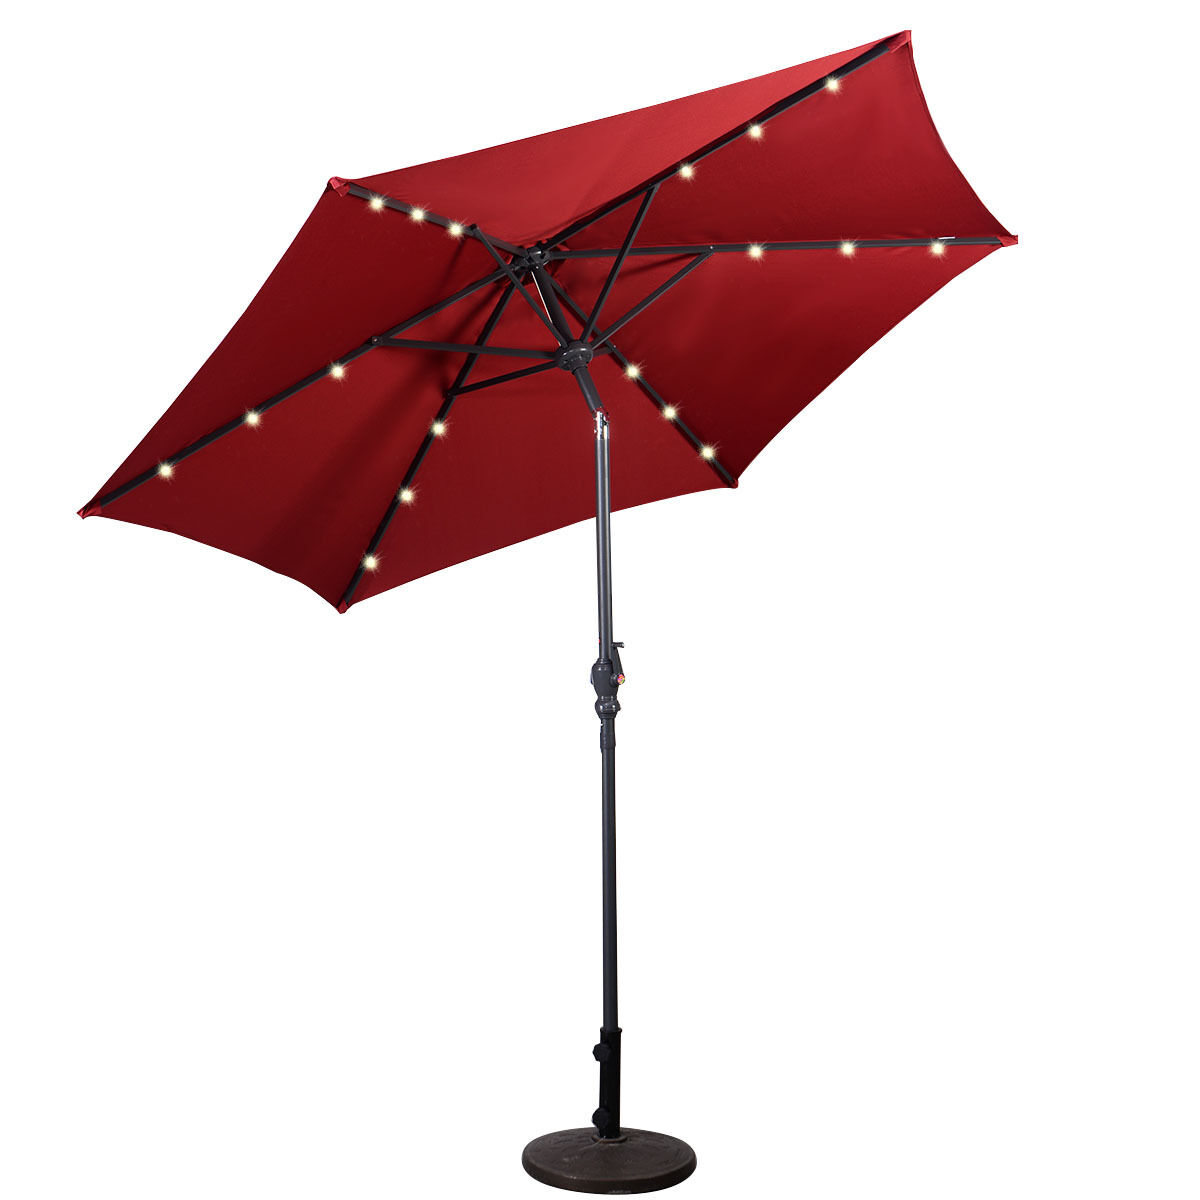 9FT-Patio-Solar-Umbrella-LED-Patio-Market-Steel-Tilt-W-Crank-Outdoor-GOPLUS-New thumbnail 20